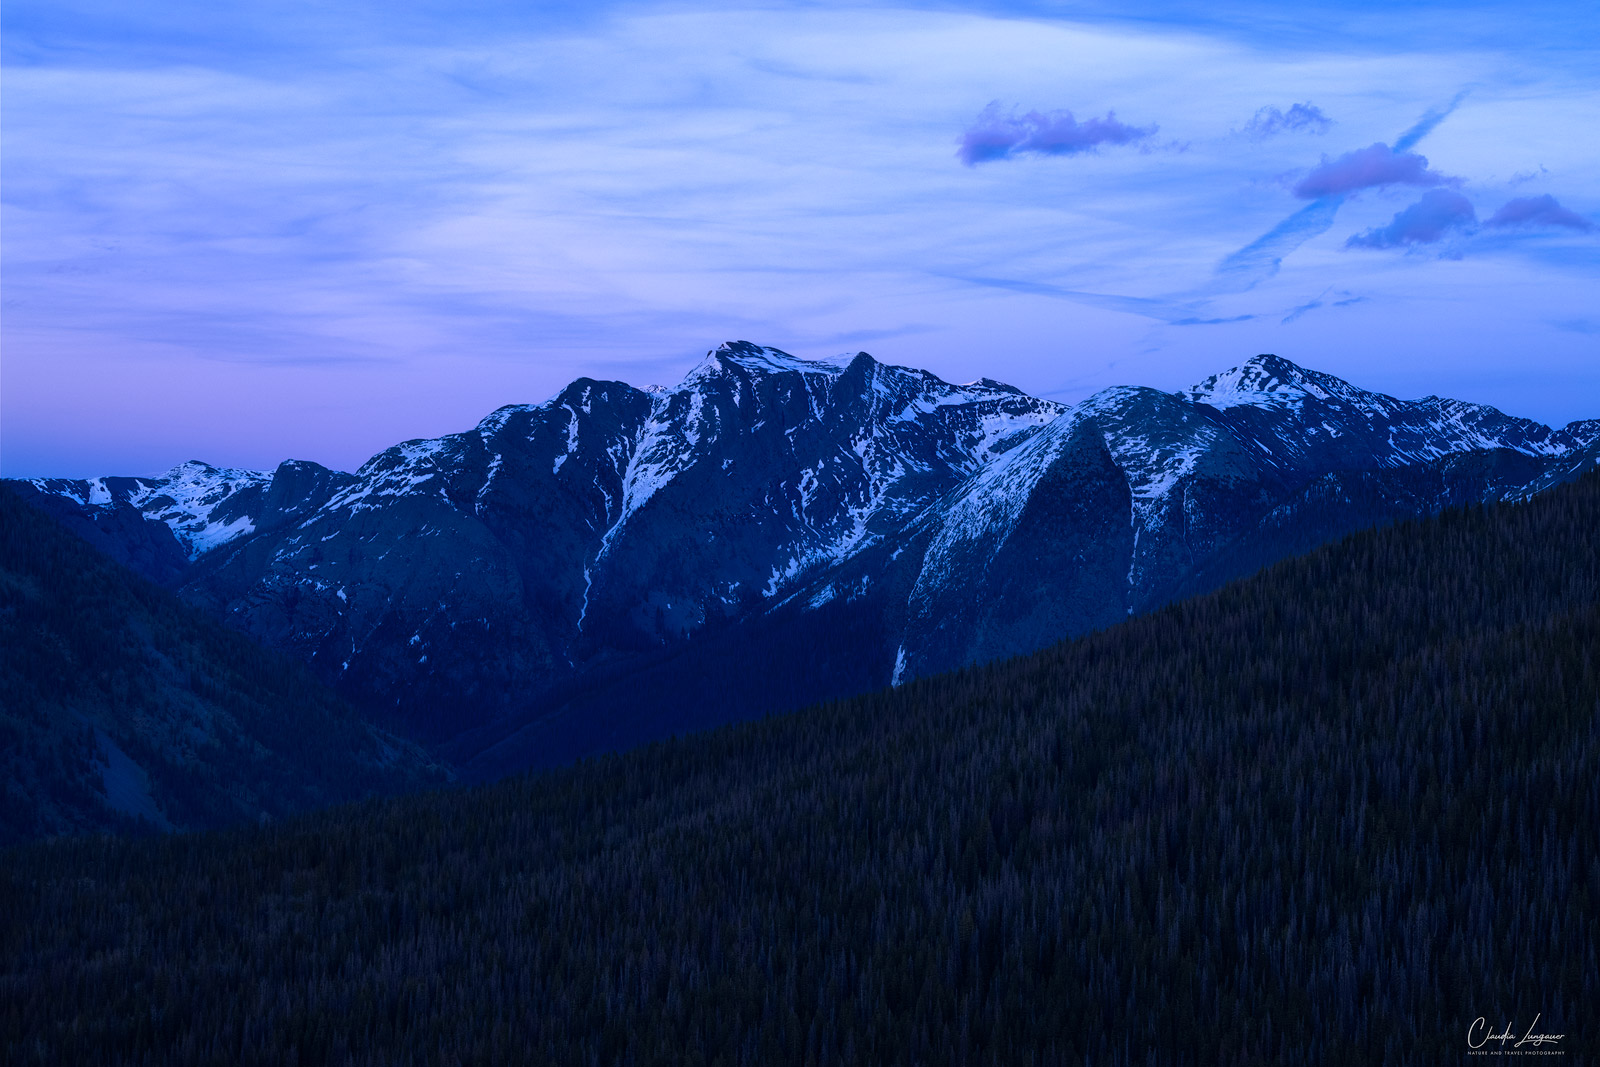 View of San Juan Mountains on the Million Dollar Highway at dusk.